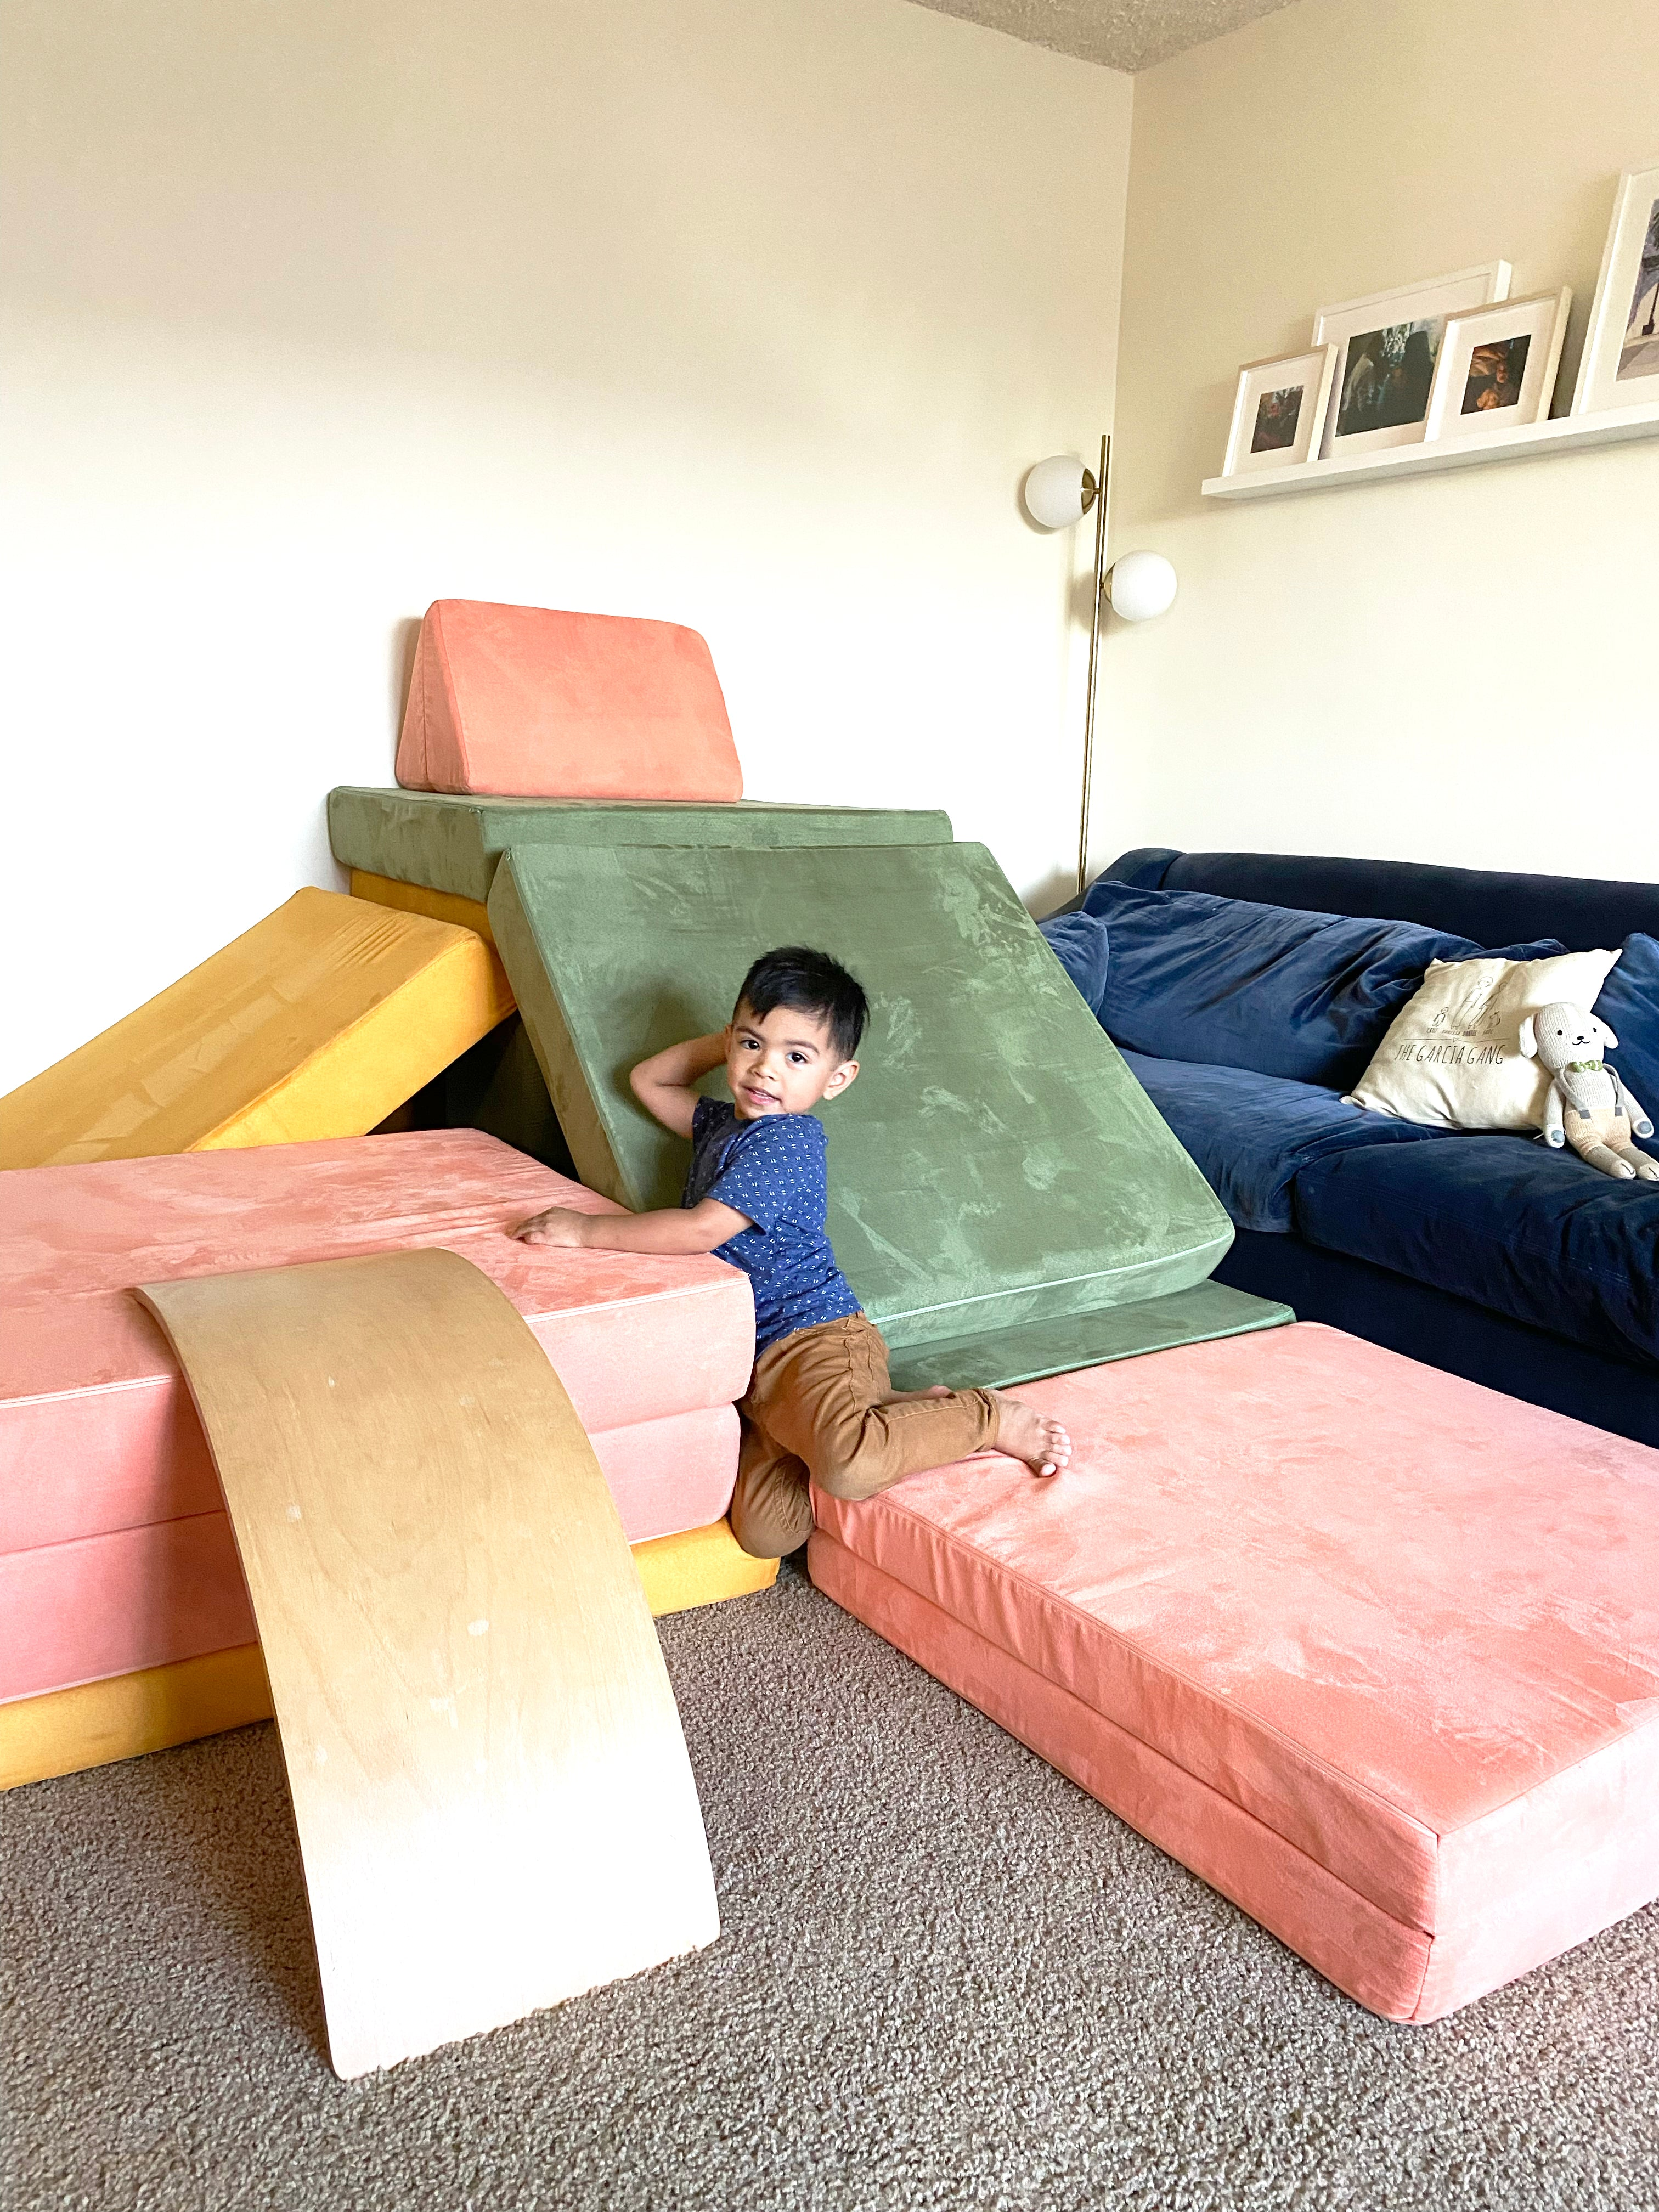 Child sitting on a three-Nugget build, with a slide, ramp to climb up, and lots of fun to be had